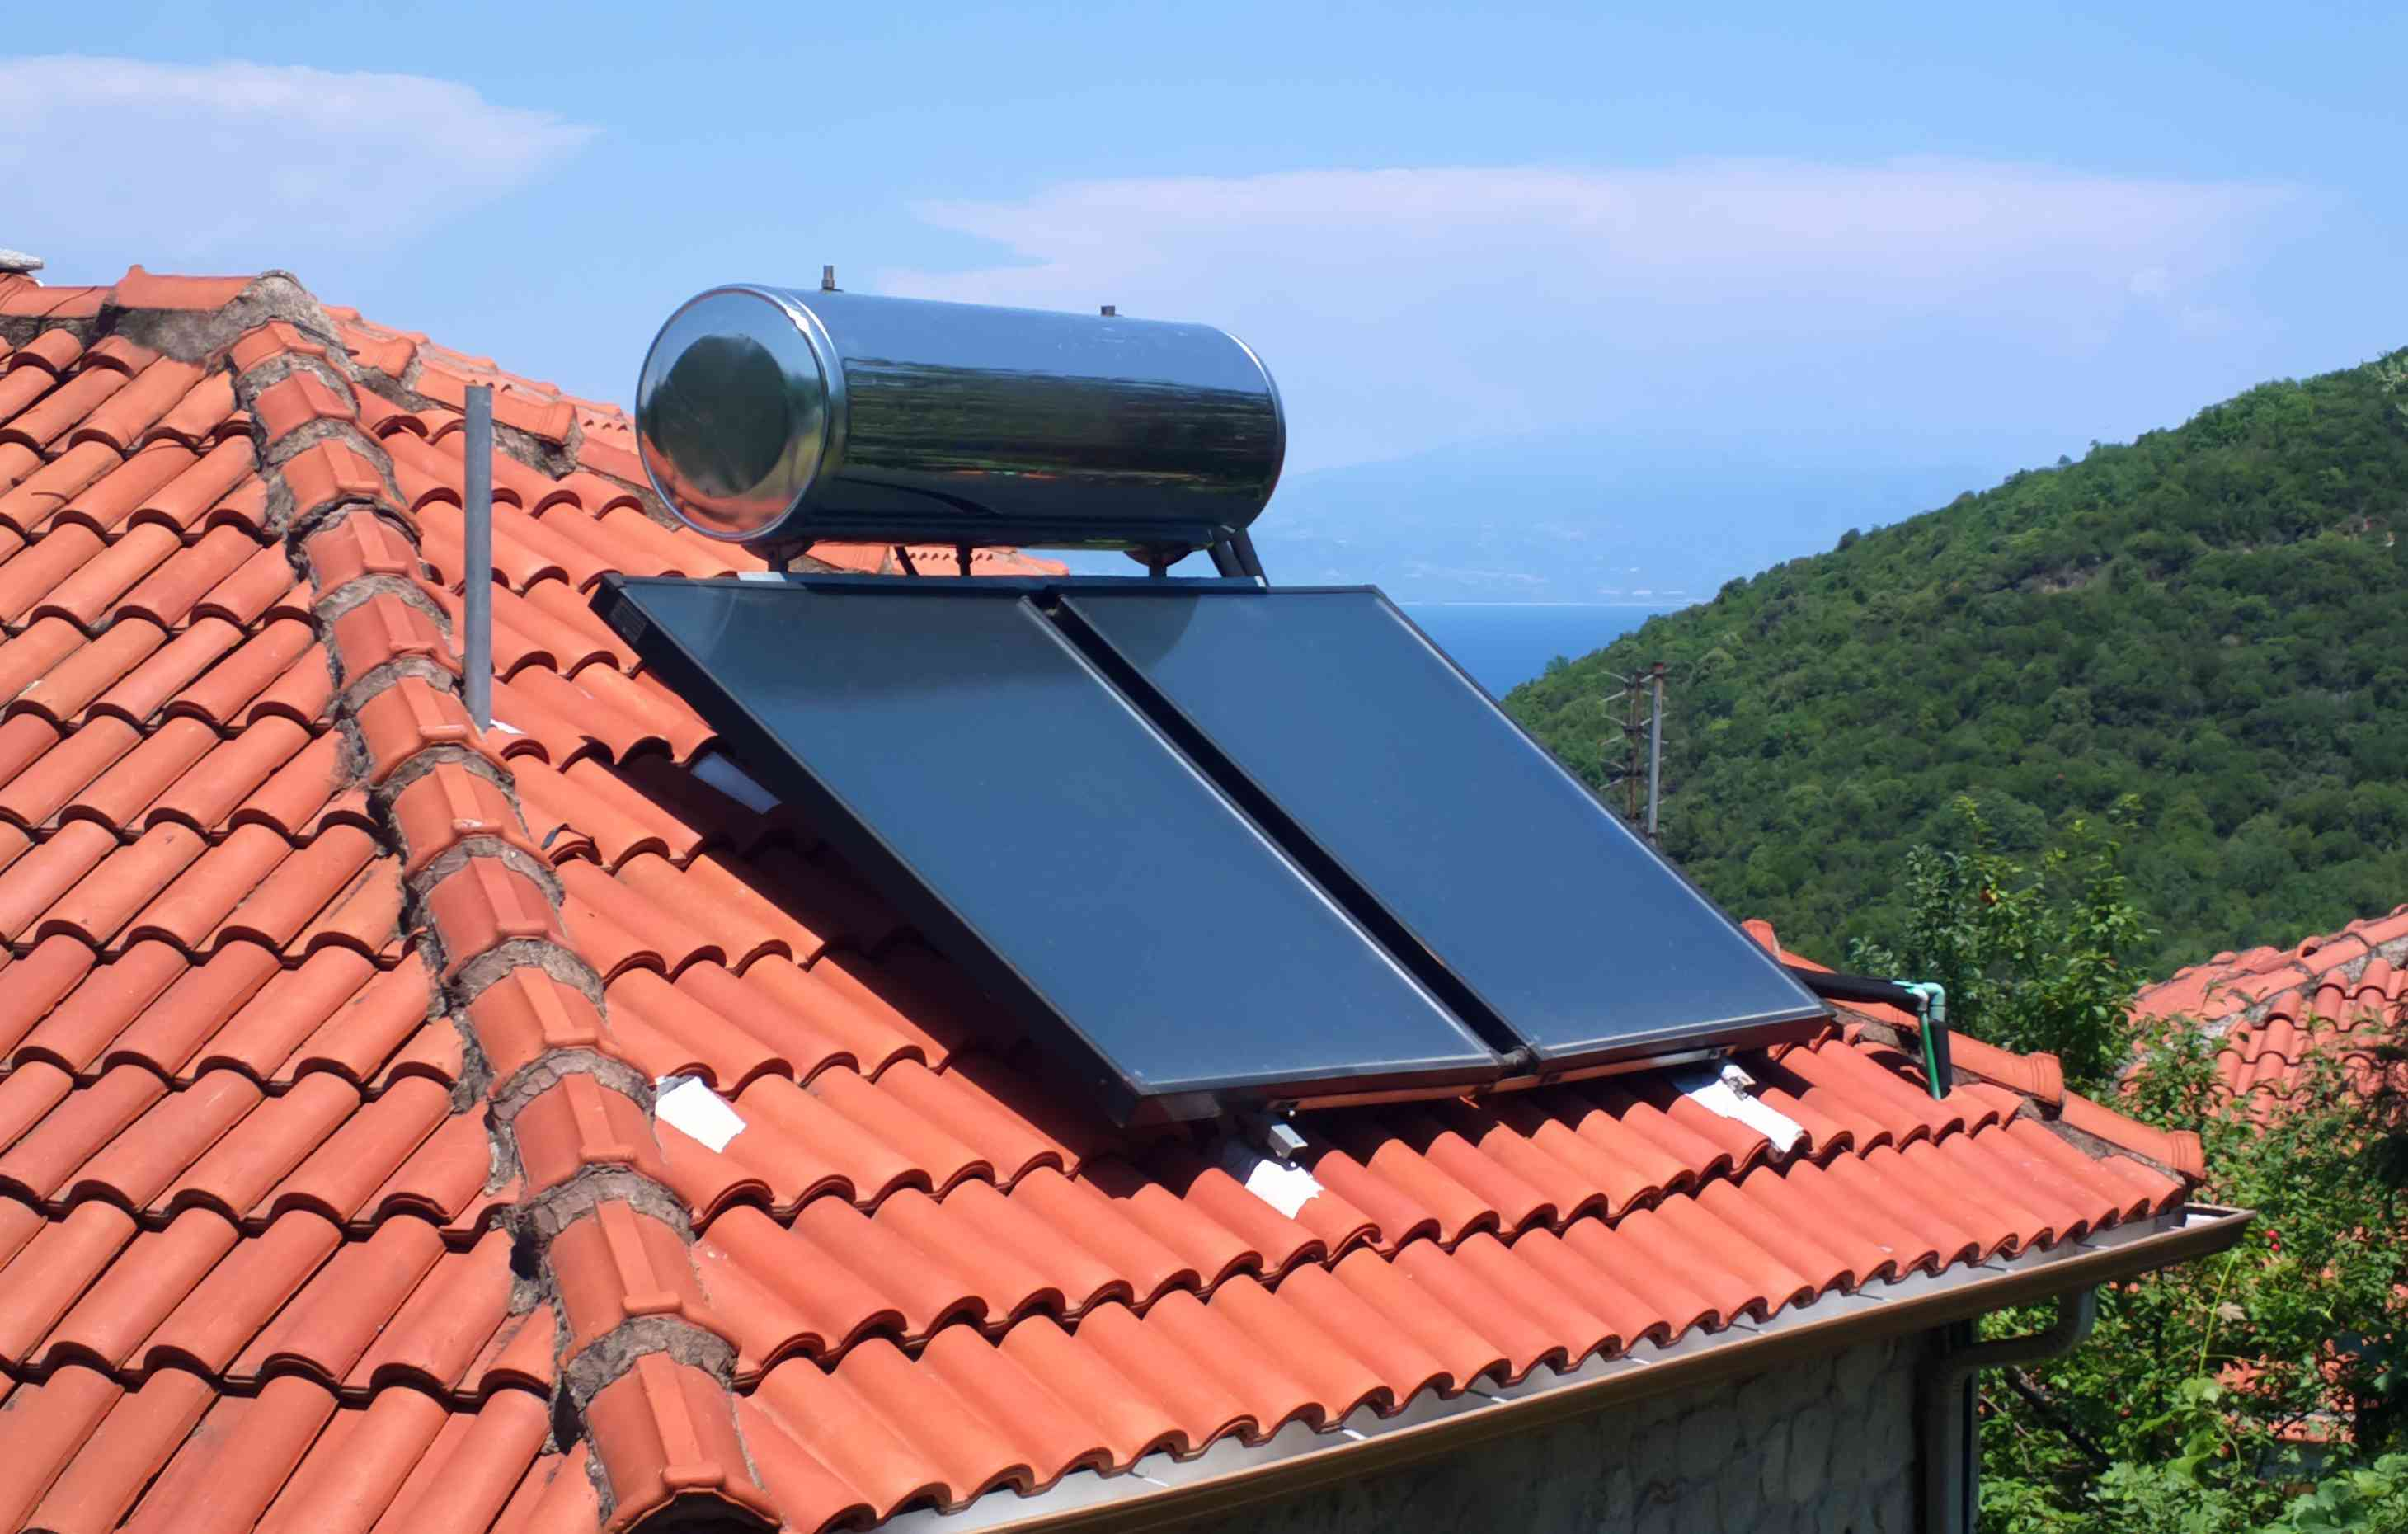 A rooftop solar water heater.